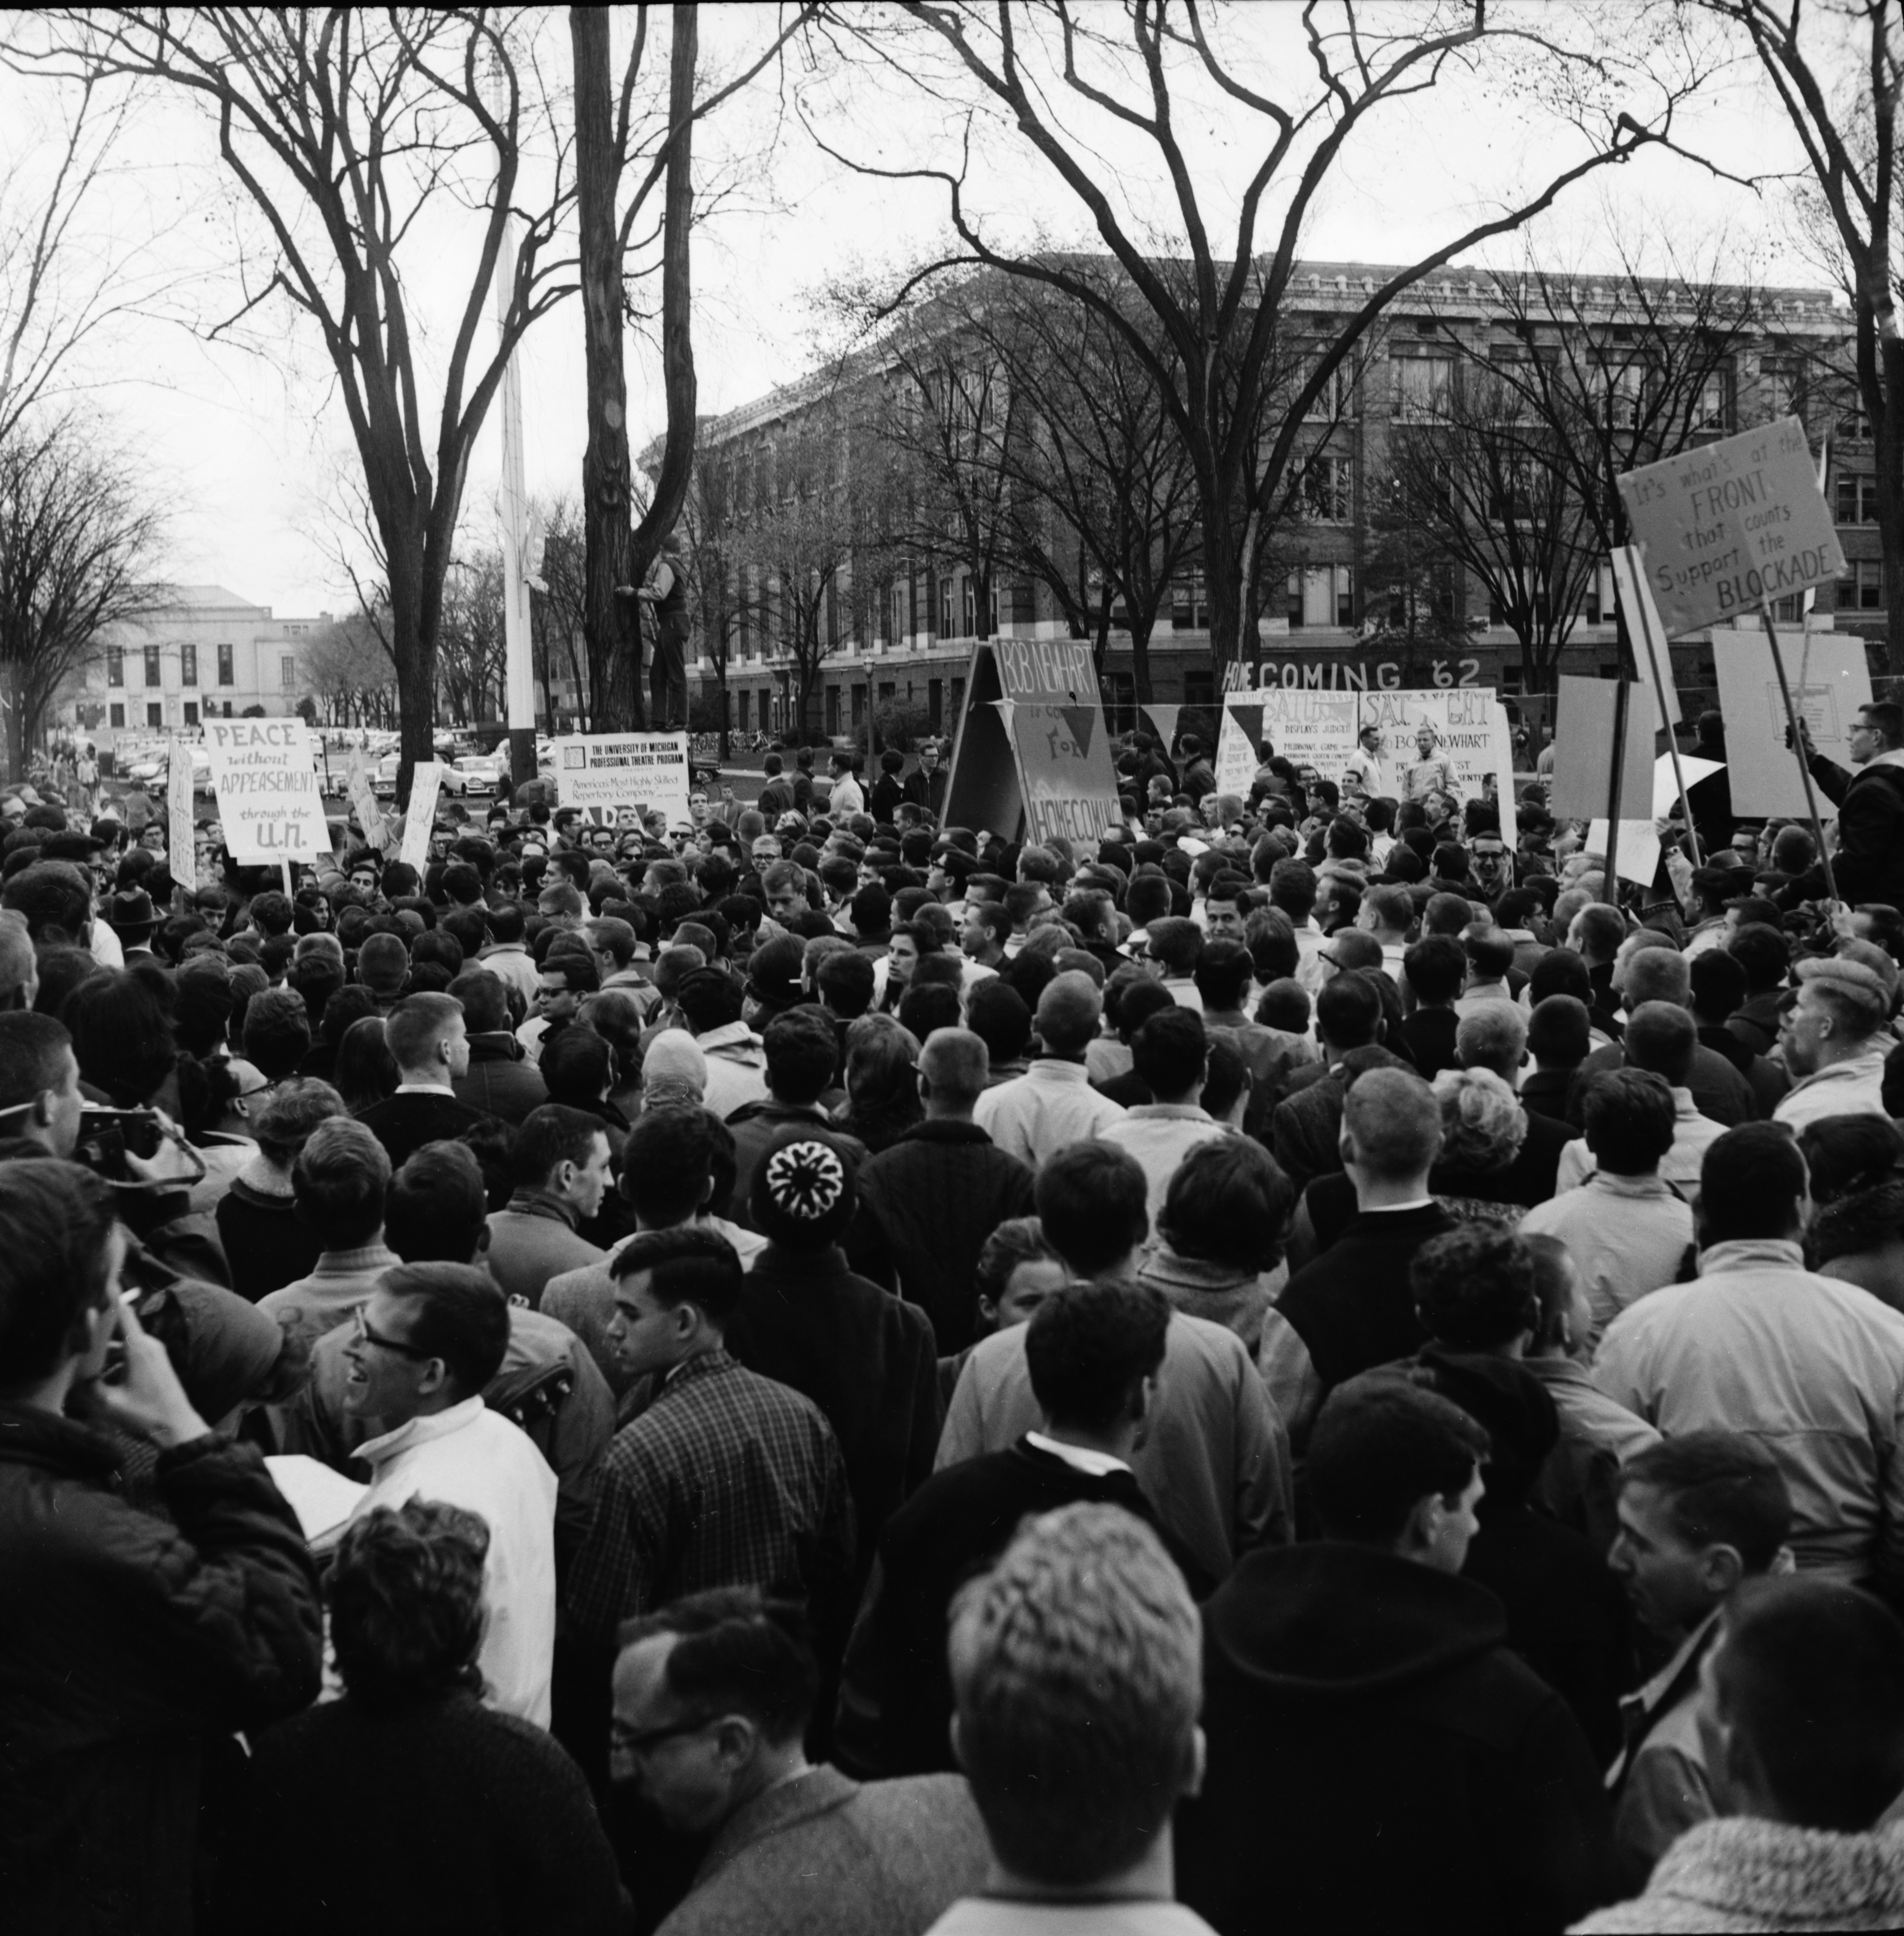 Demonstrators for and against America's Cuban blockade on the University of Michigan Diag, October 25, 1962 image